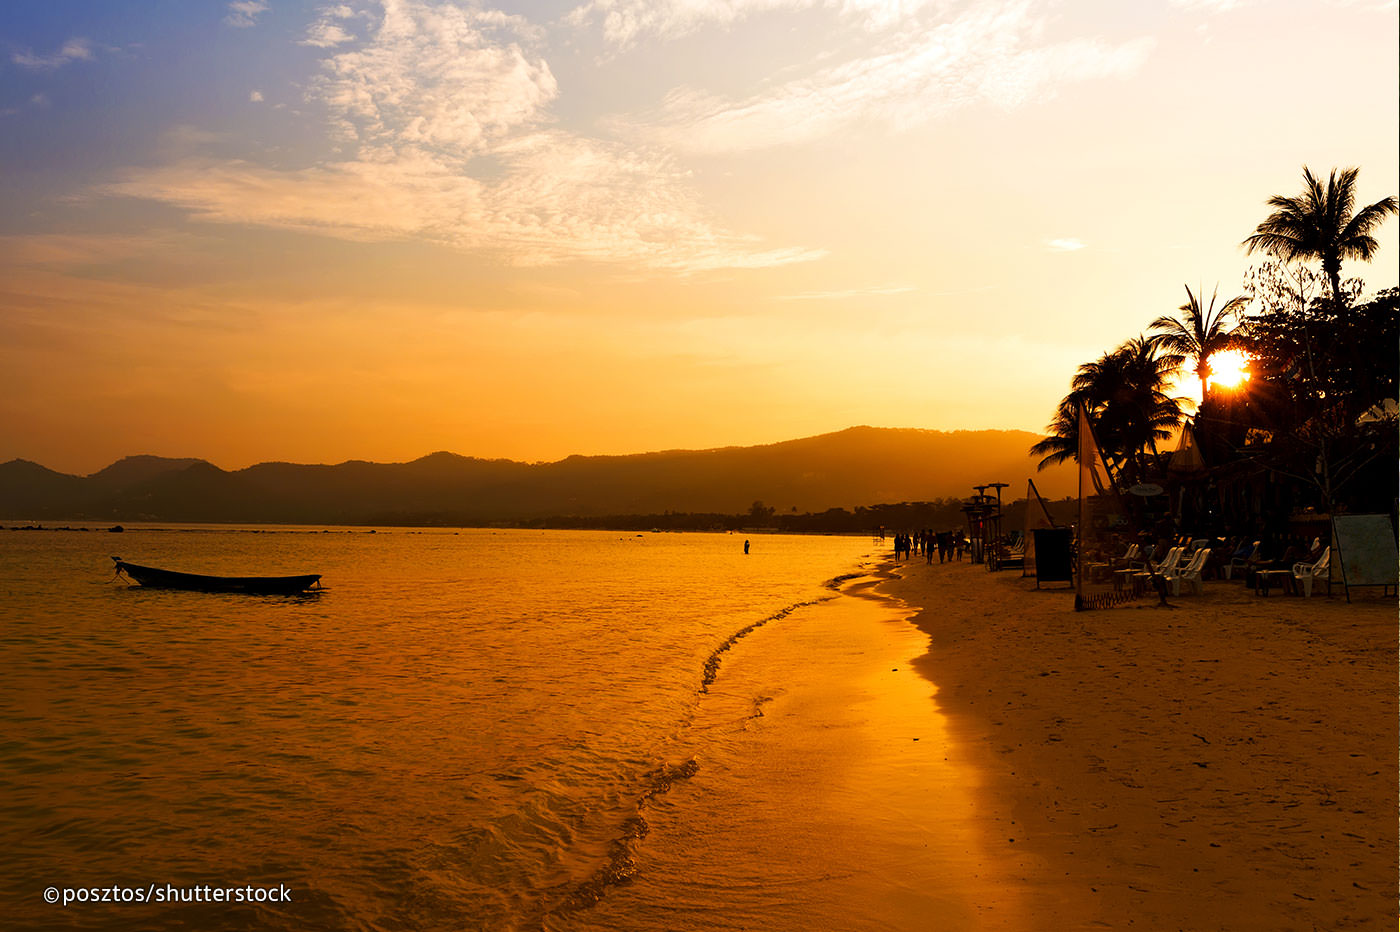 Samui sunset at the beach - Things to Do in Koh Samui